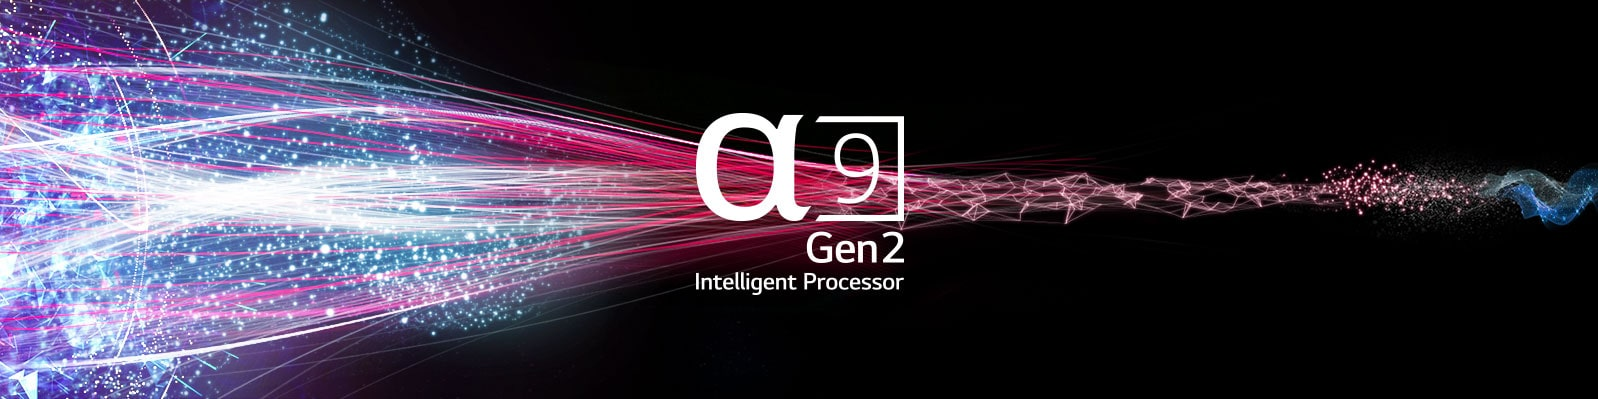 α9 Gen2 Intelligent Processor